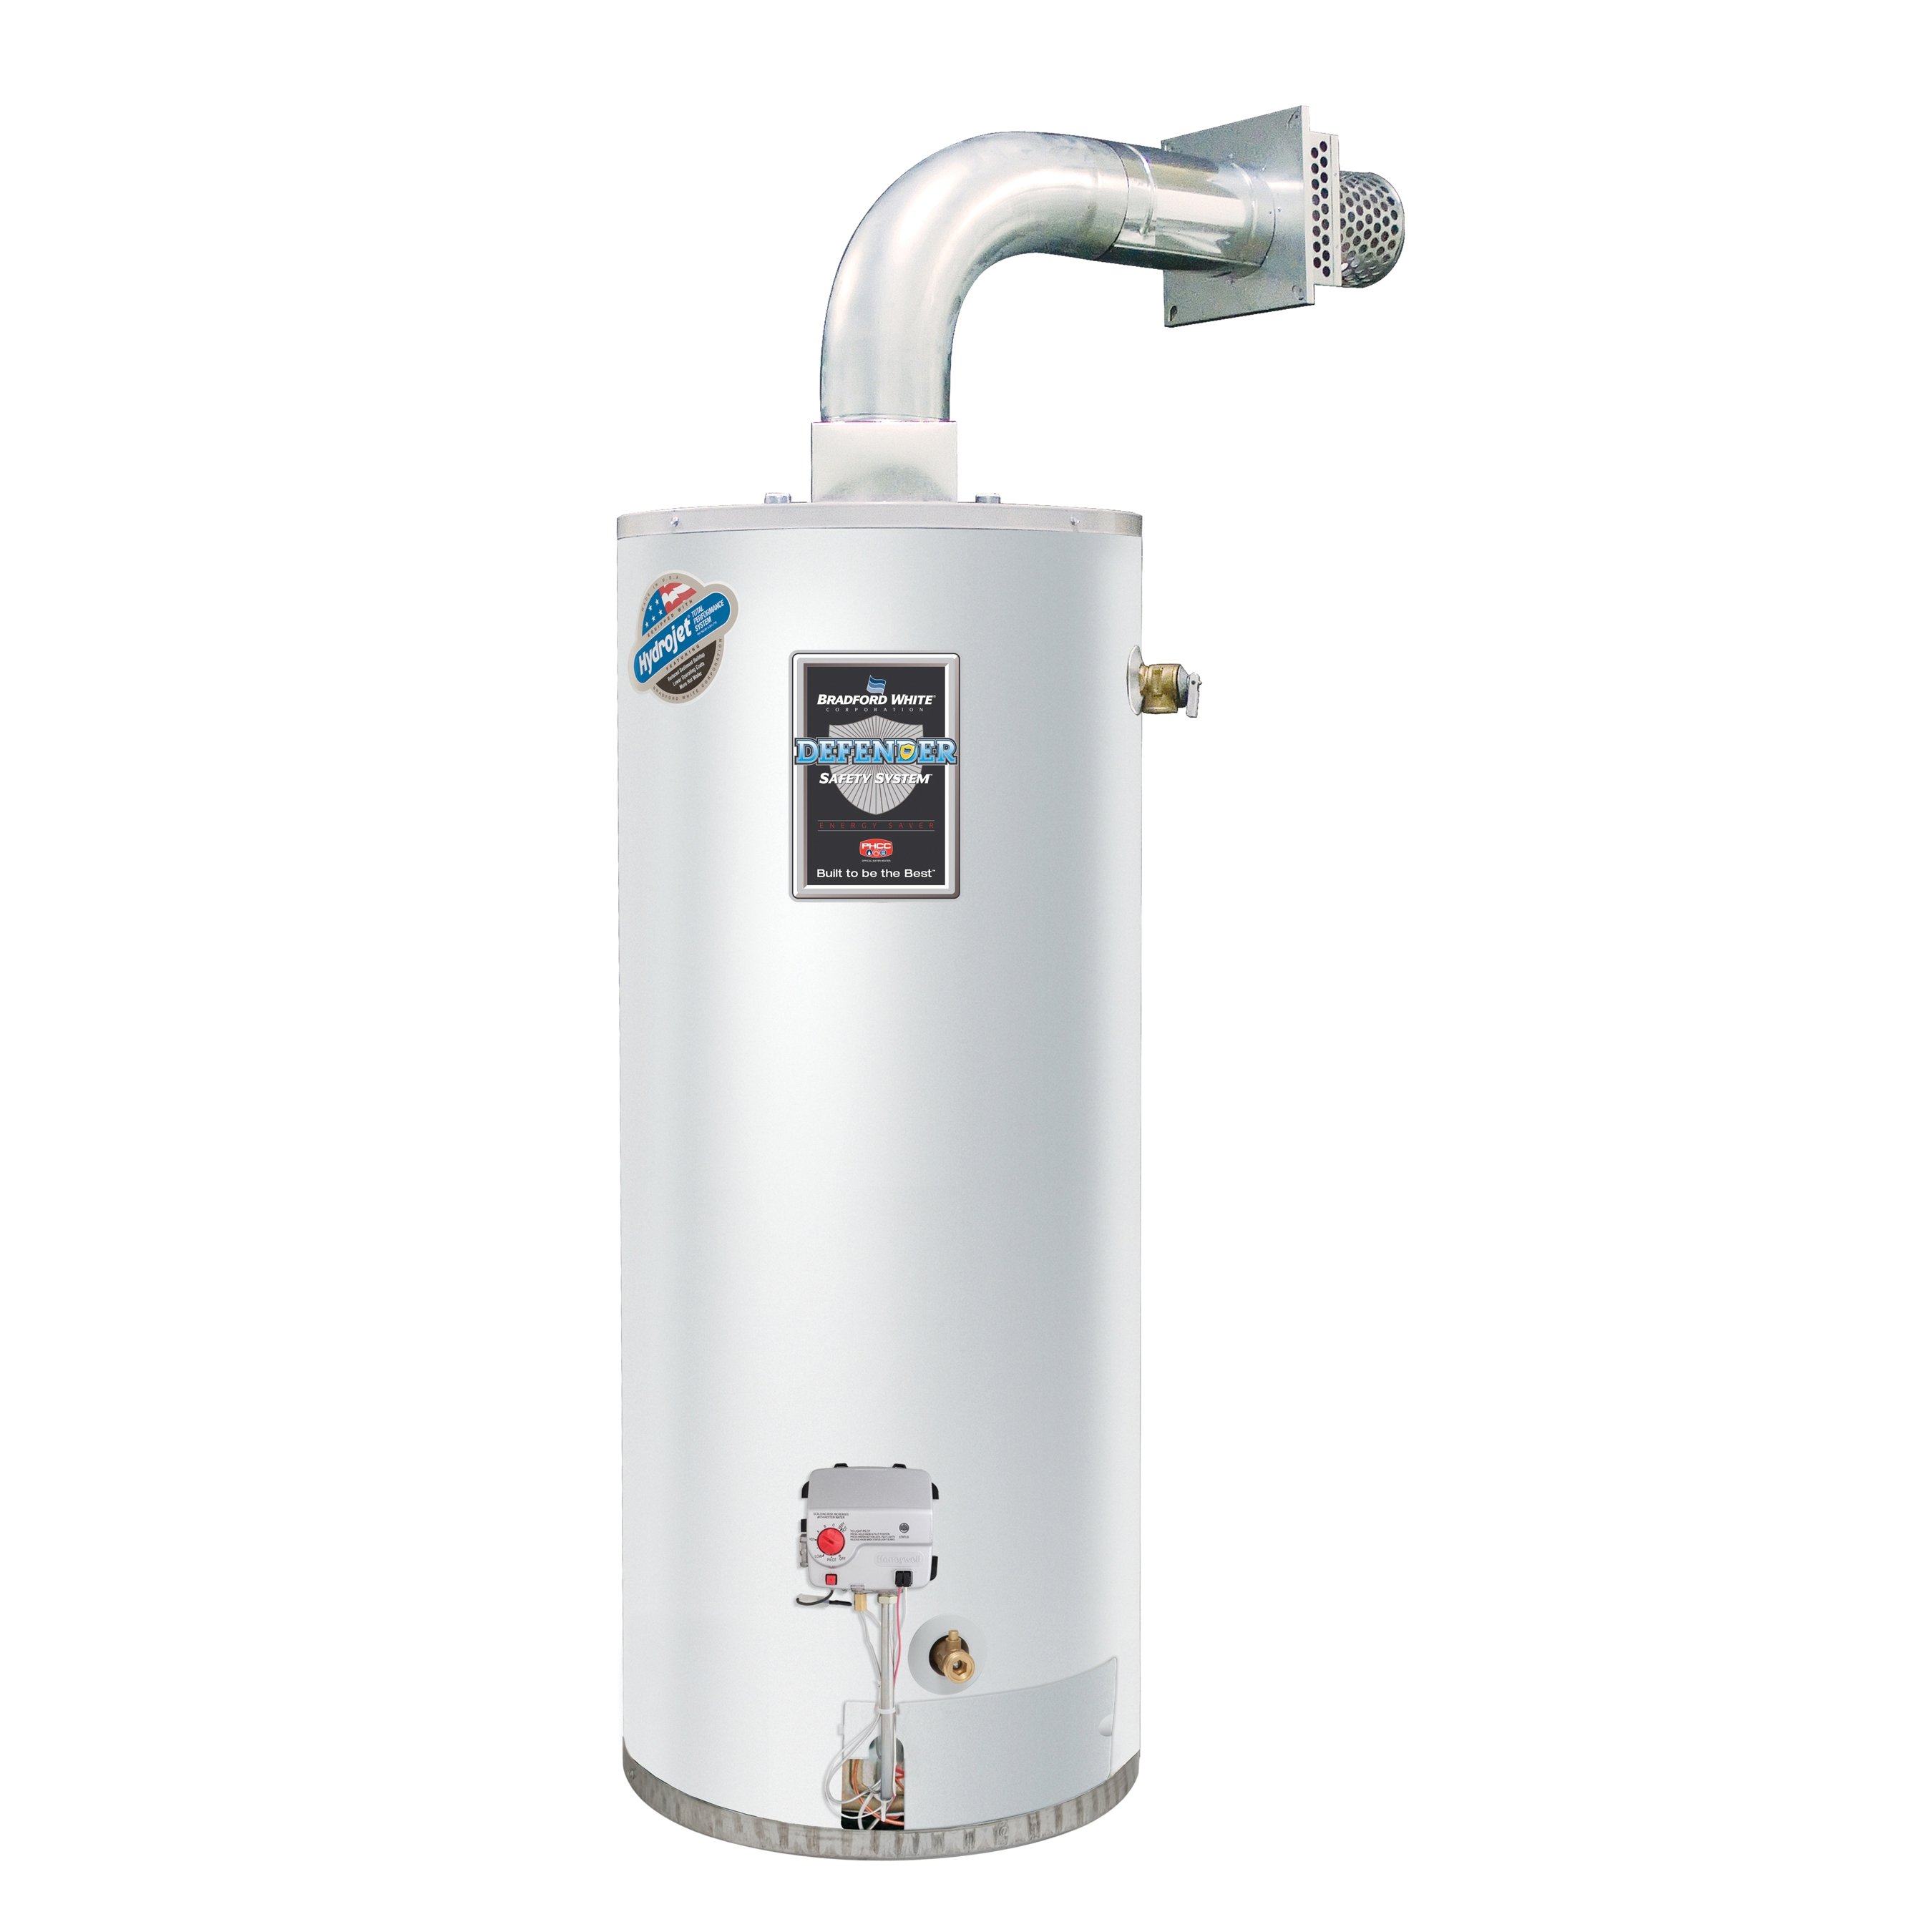 Bradford White® Defender Safety System® RG2DV50S6N-FLX Gas Water Heater, 42000 Btu/hr Heating, 50 gal Tank, Natural Gas Fuel, Direct Vent, 45 gph Recovery, Domestic